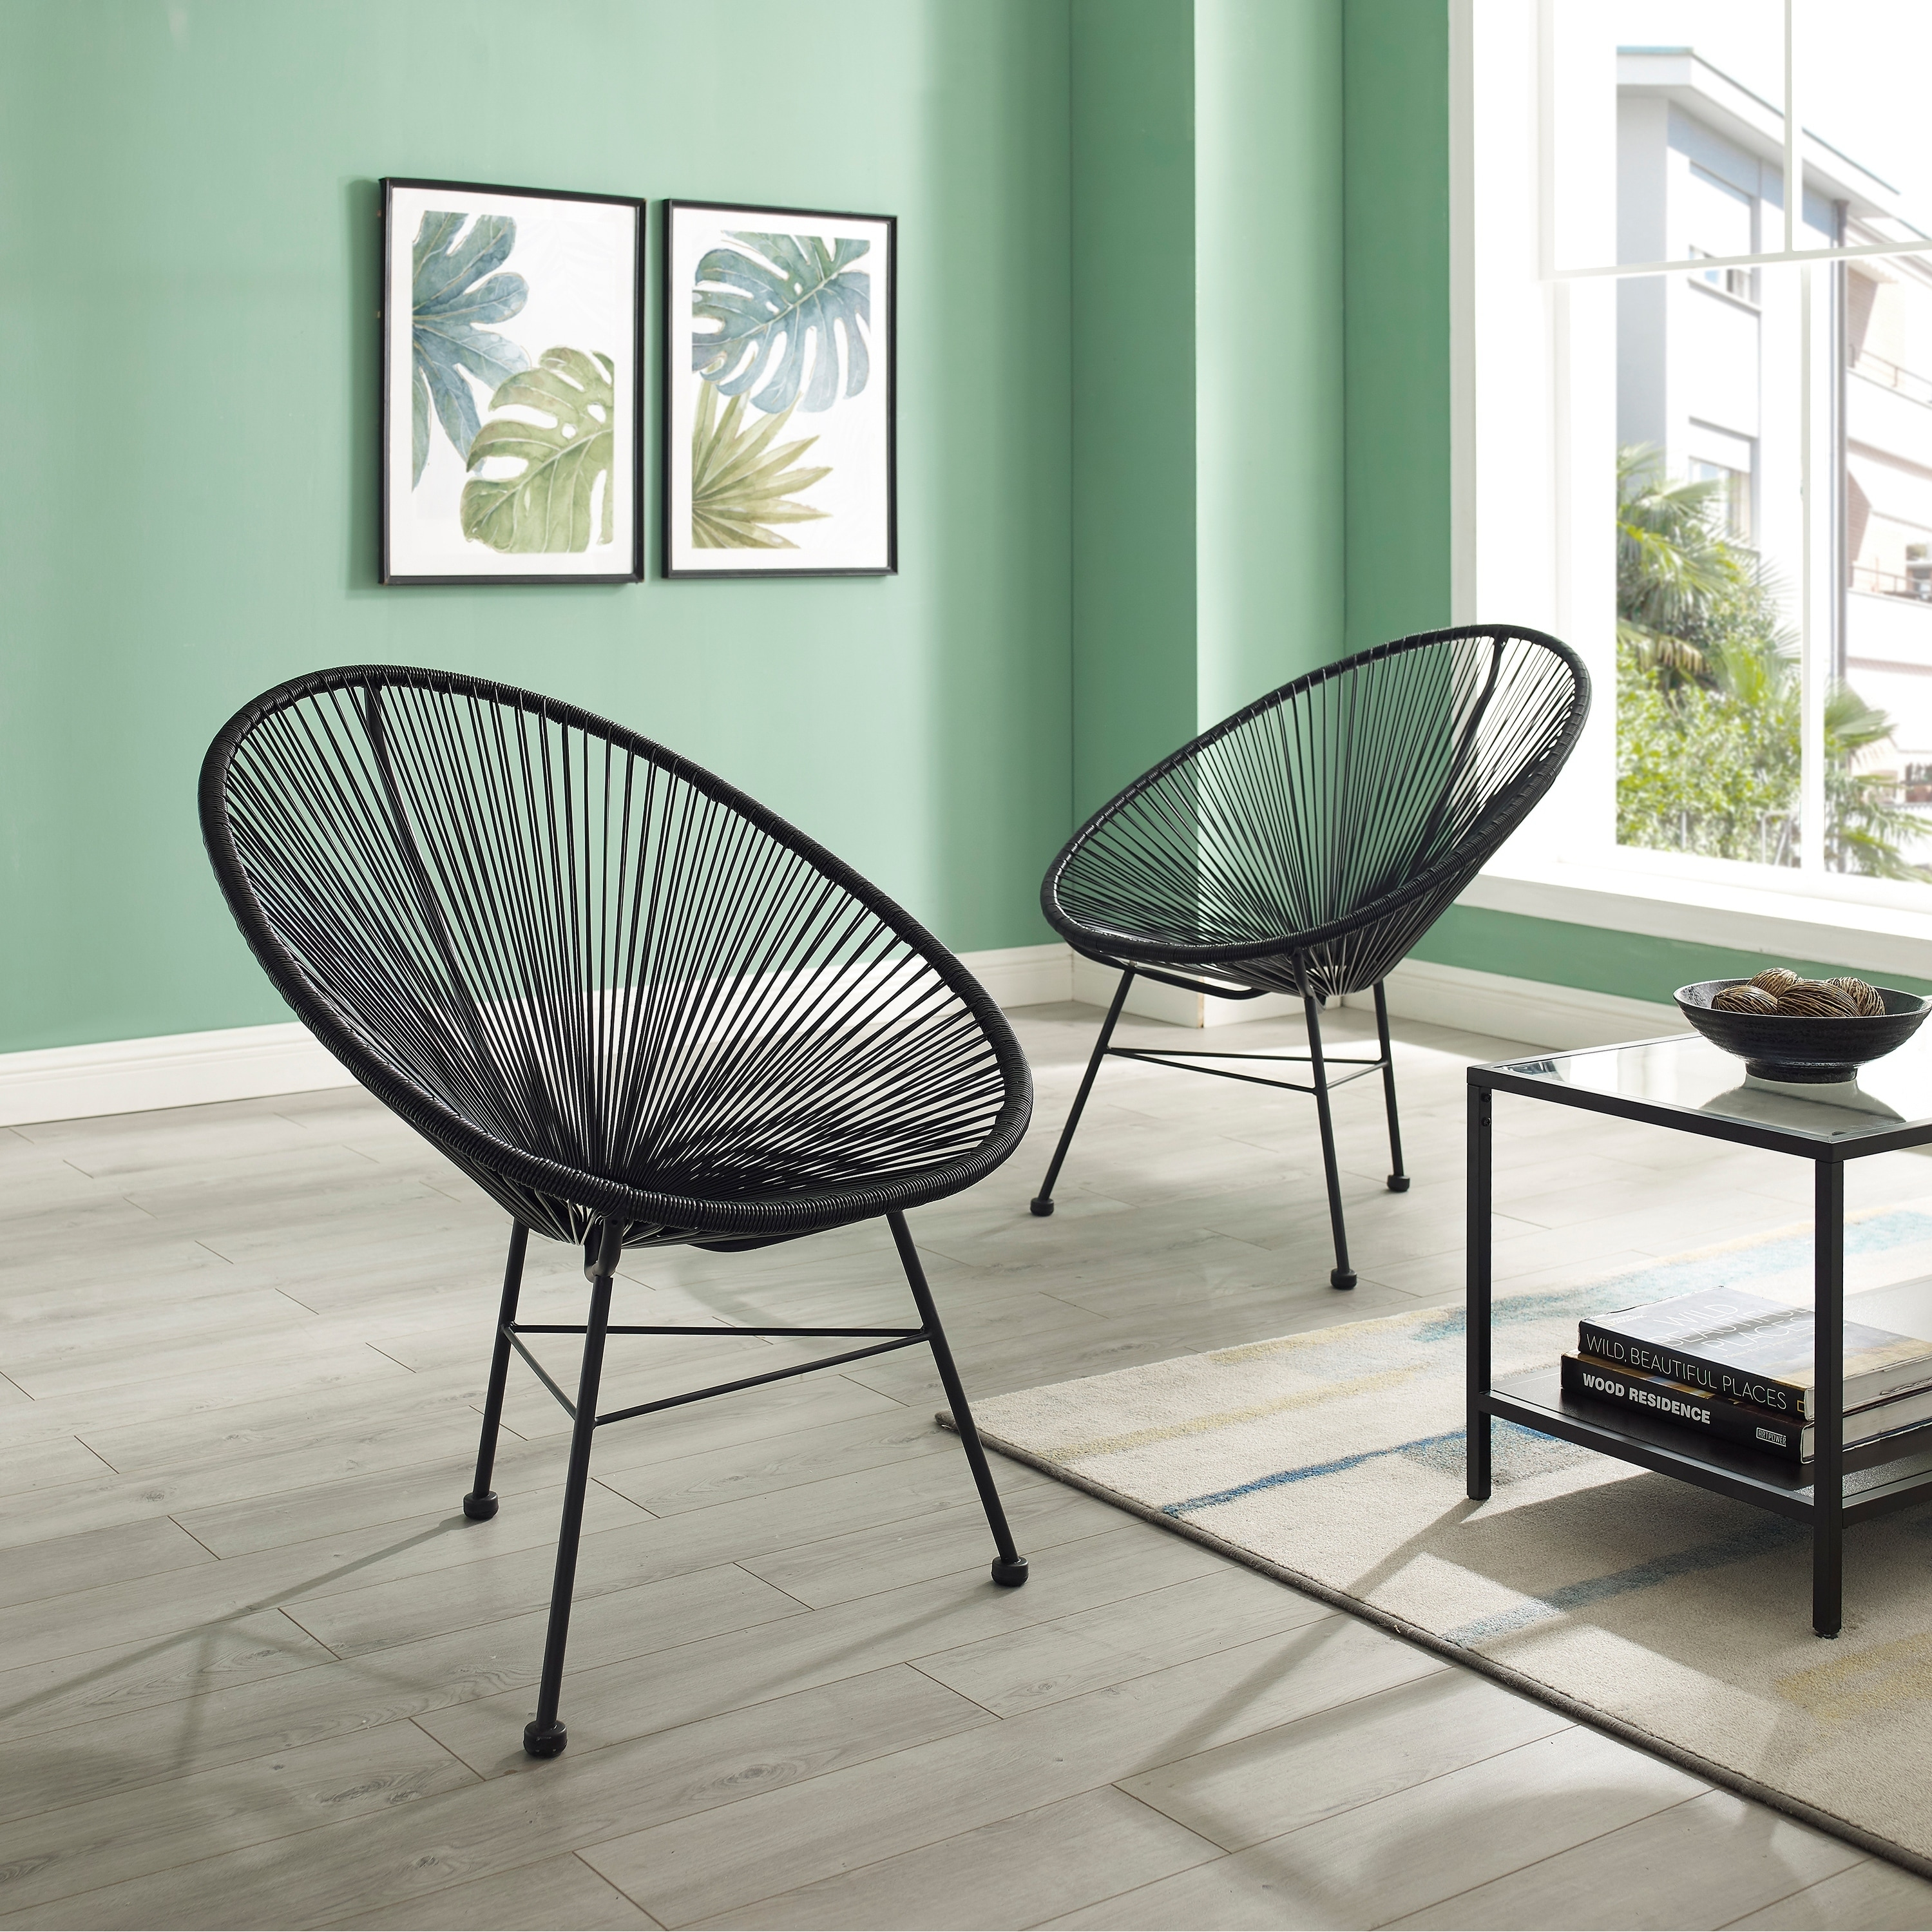 Swell Details About Sarcelles Modern Wicker Patio Chairs By Corvus Set Of 2 Gmtry Best Dining Table And Chair Ideas Images Gmtryco